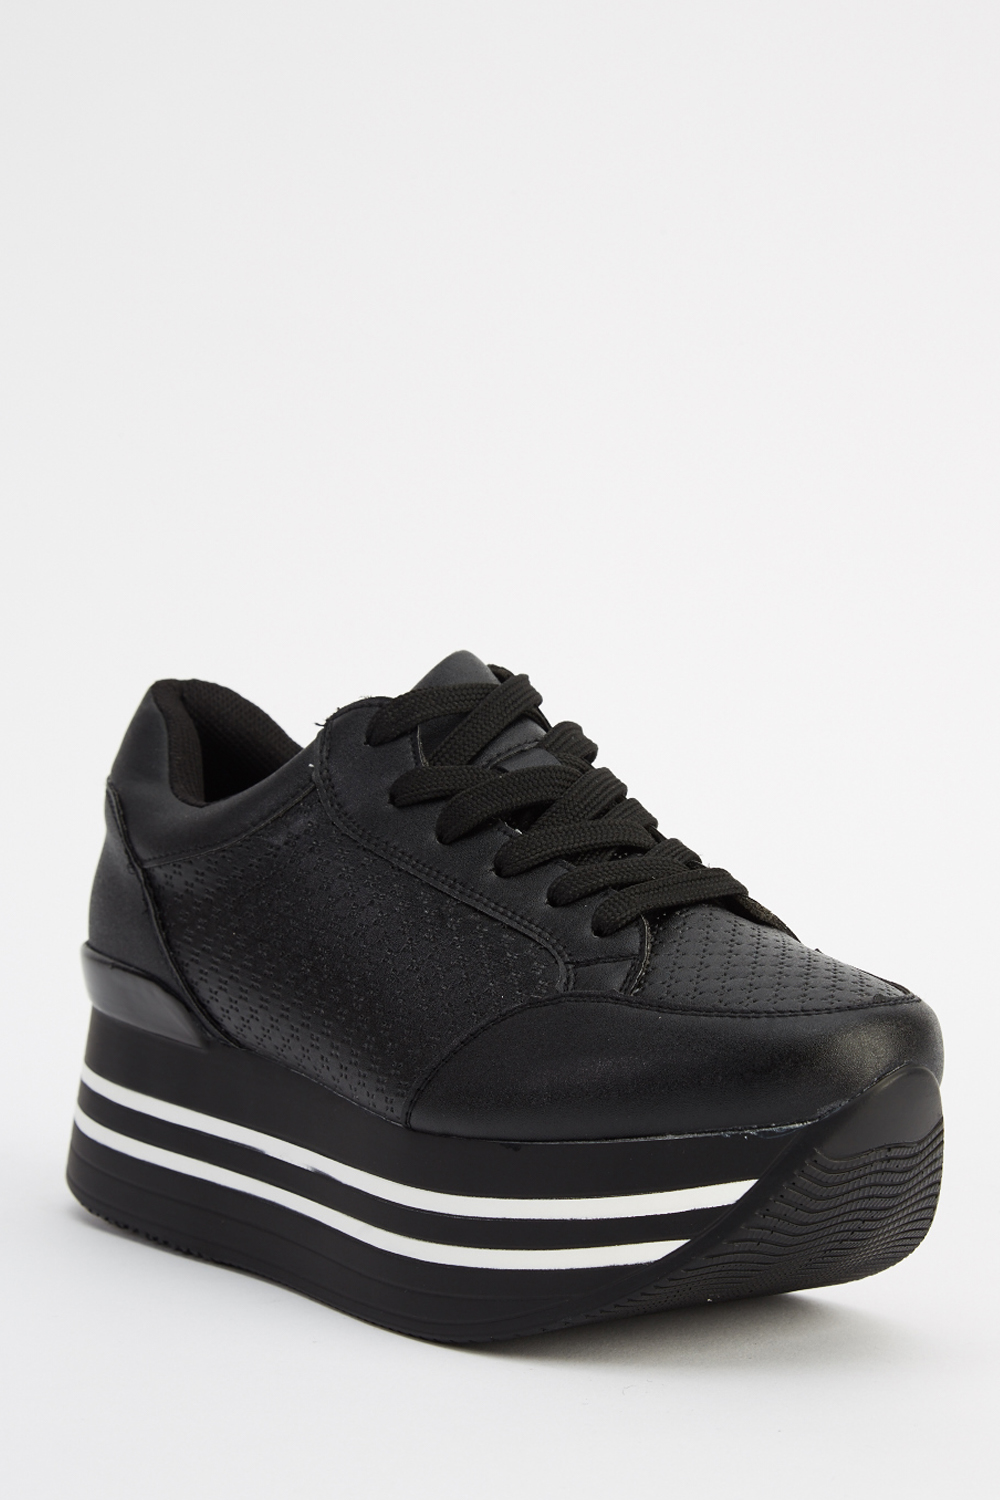 Ideal Mono Platform Trainers Limited Edition Discount Designer Stock